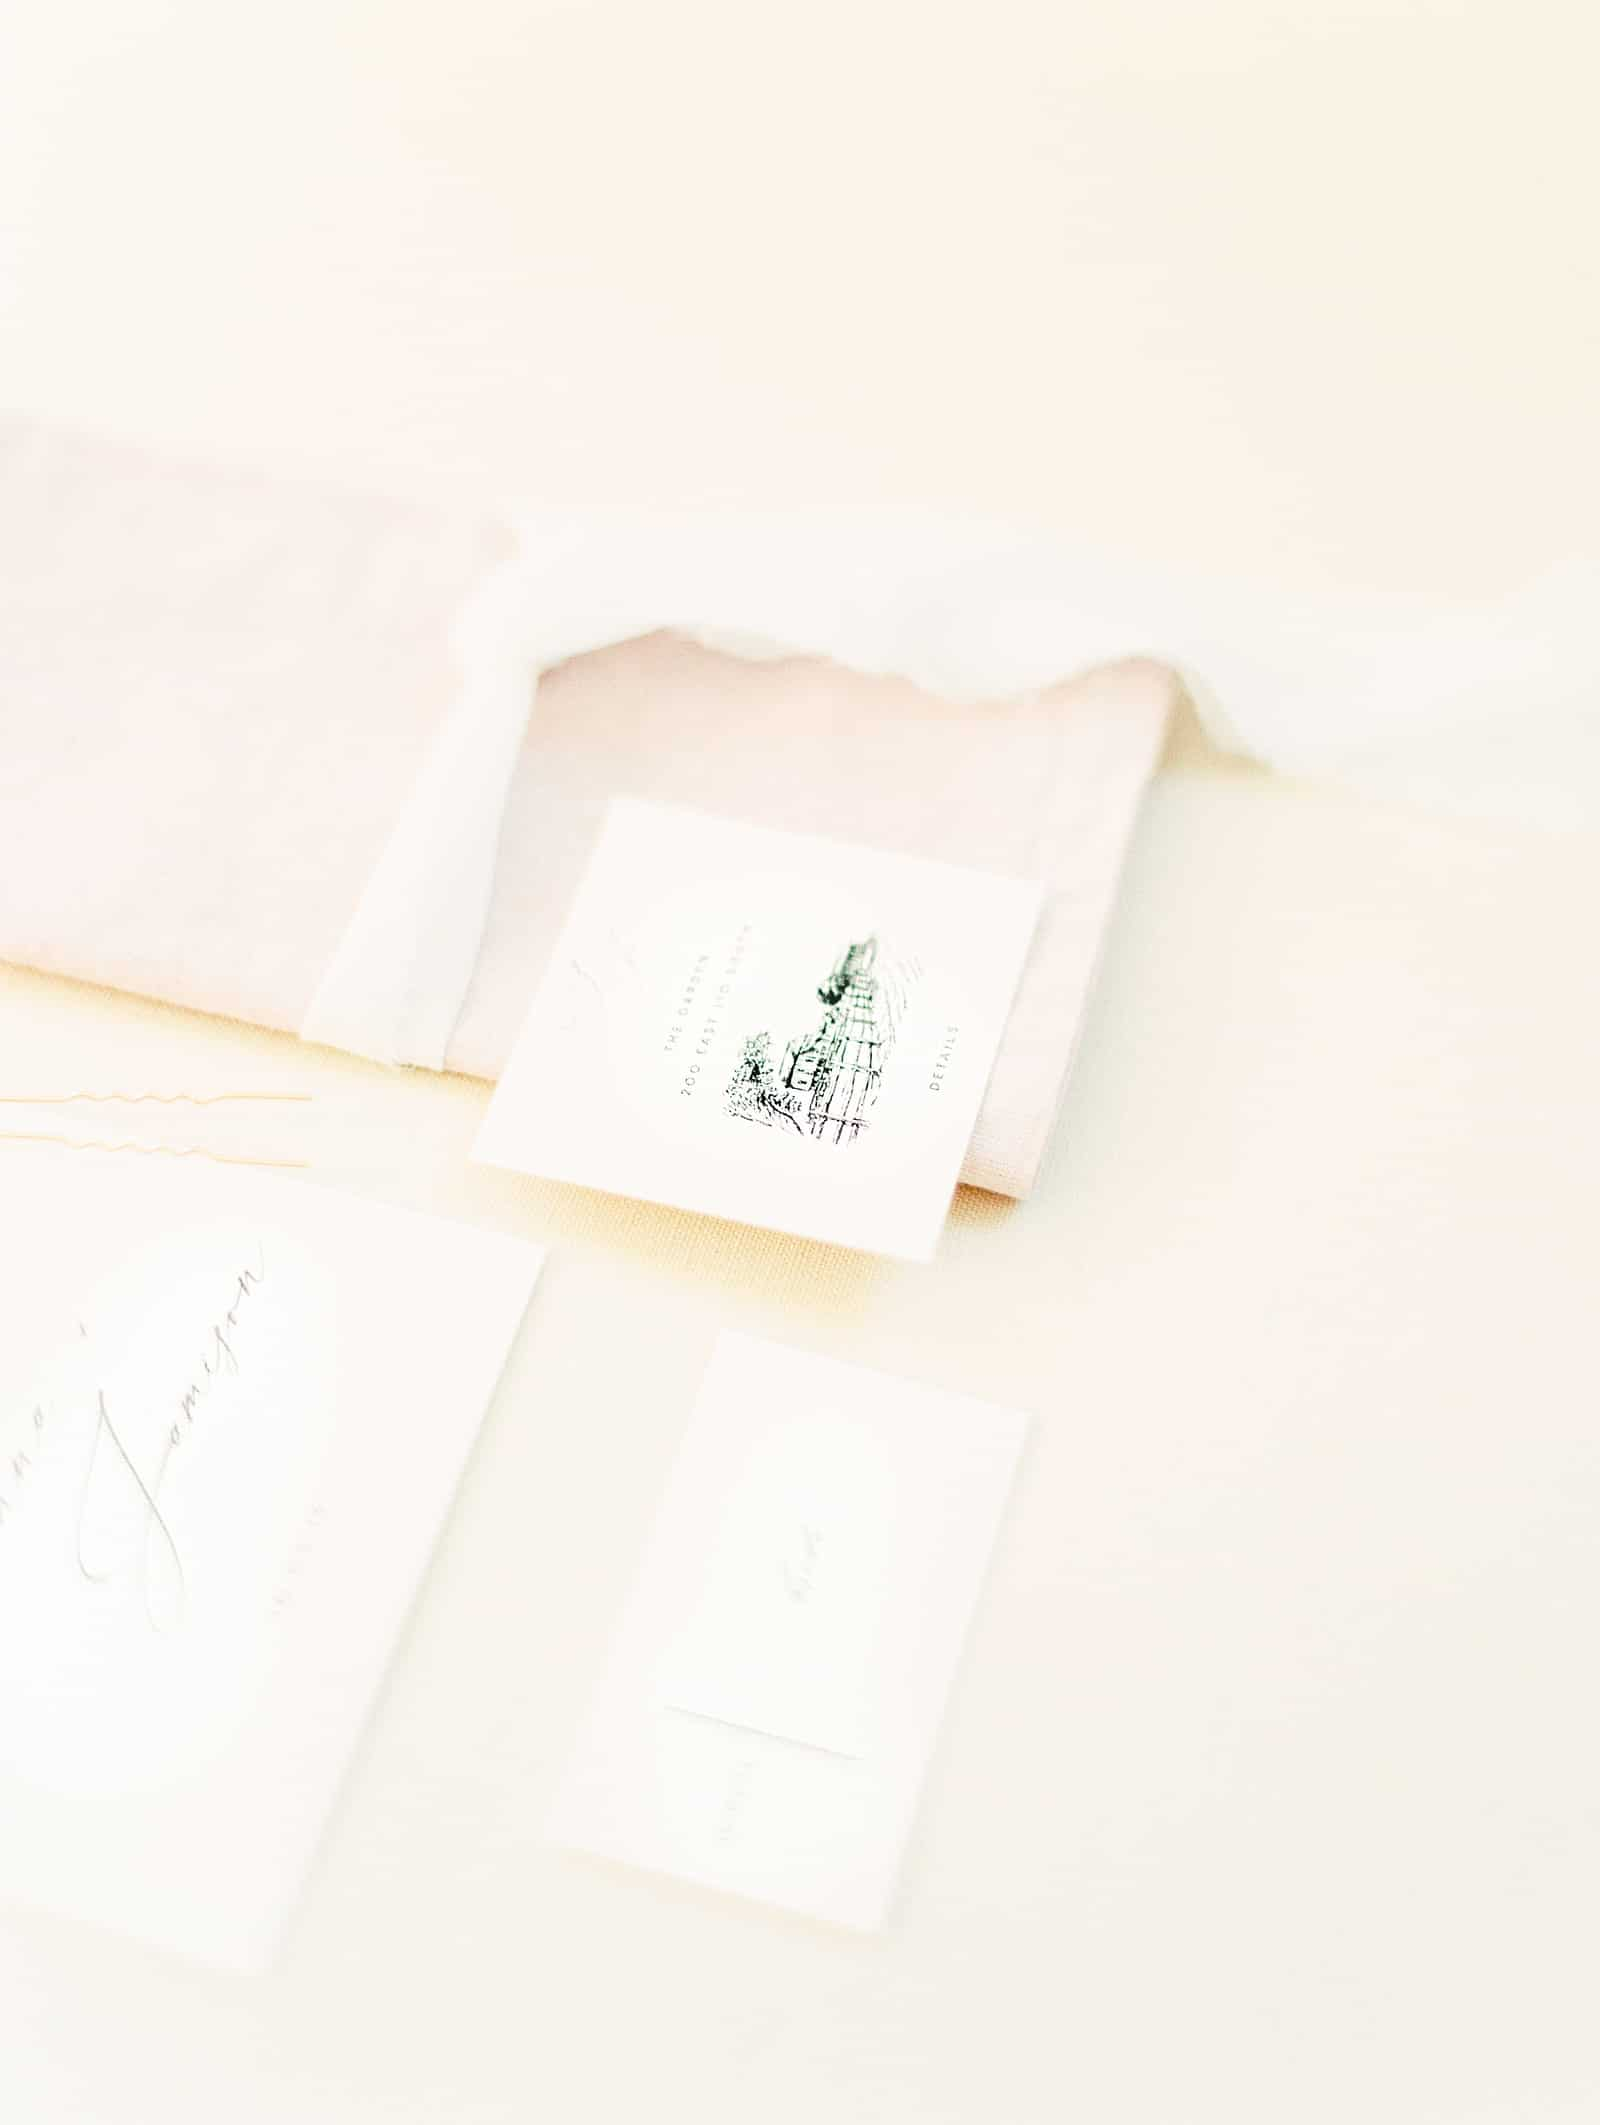 Modern minimalist wedding invitations with calligraphy, back and white venue sketch